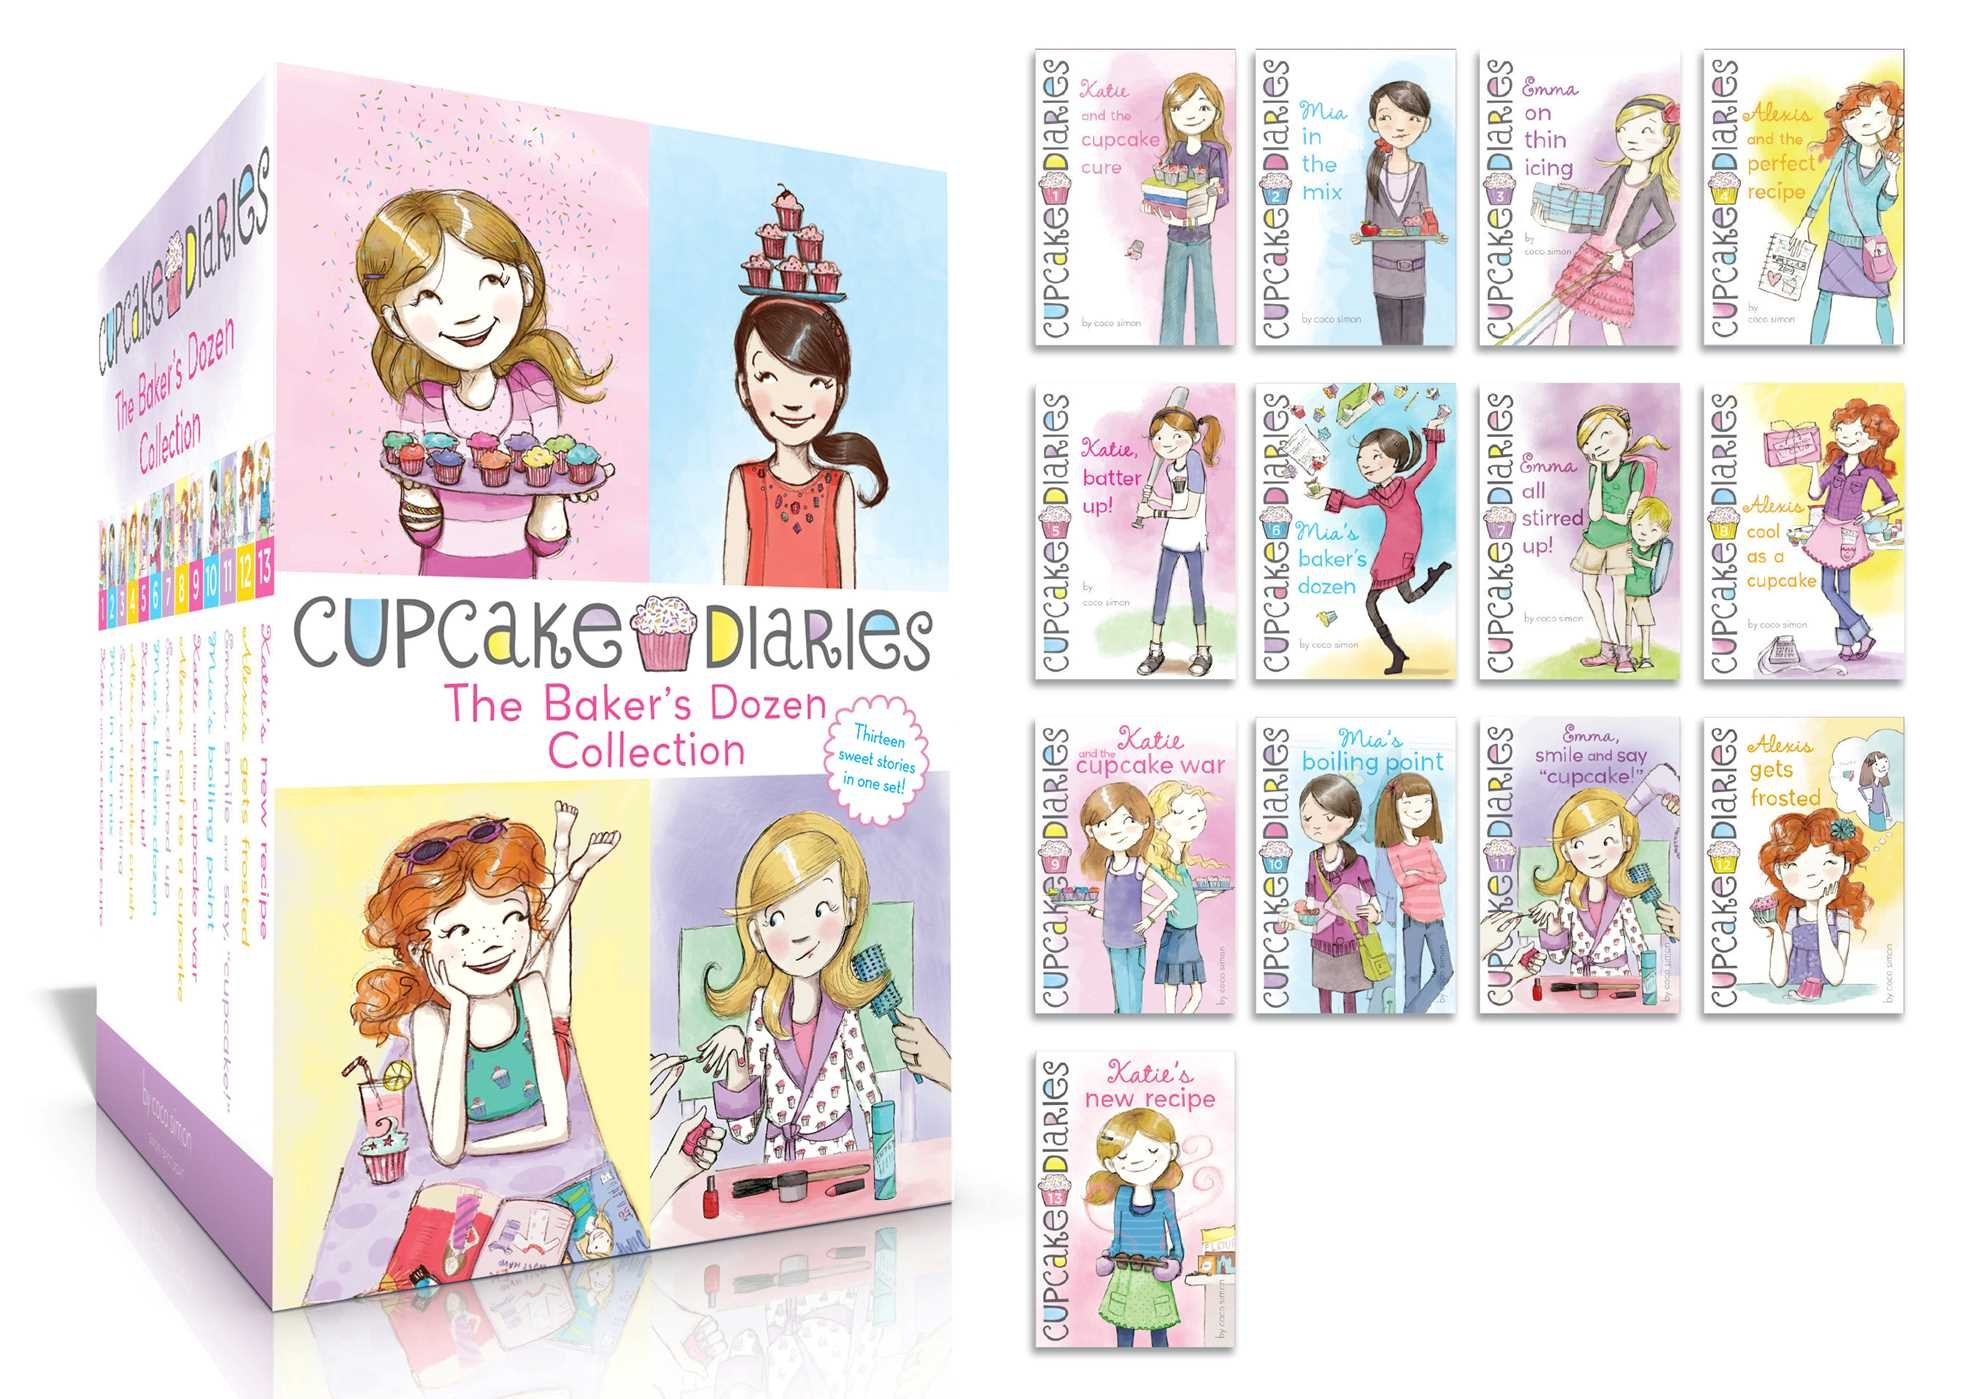 The Baker's Dozen Collection: Katie and the Cupcake Cure; Mia in the Mix; Emma on Thin Icing; Alexis and the Perfect Recipe; Katie, Batter Up!; Mia's ... Mia's Boiling Point; etc. (Cupcake Diaries) by SIMON SPOTLIGHT (Image #2)